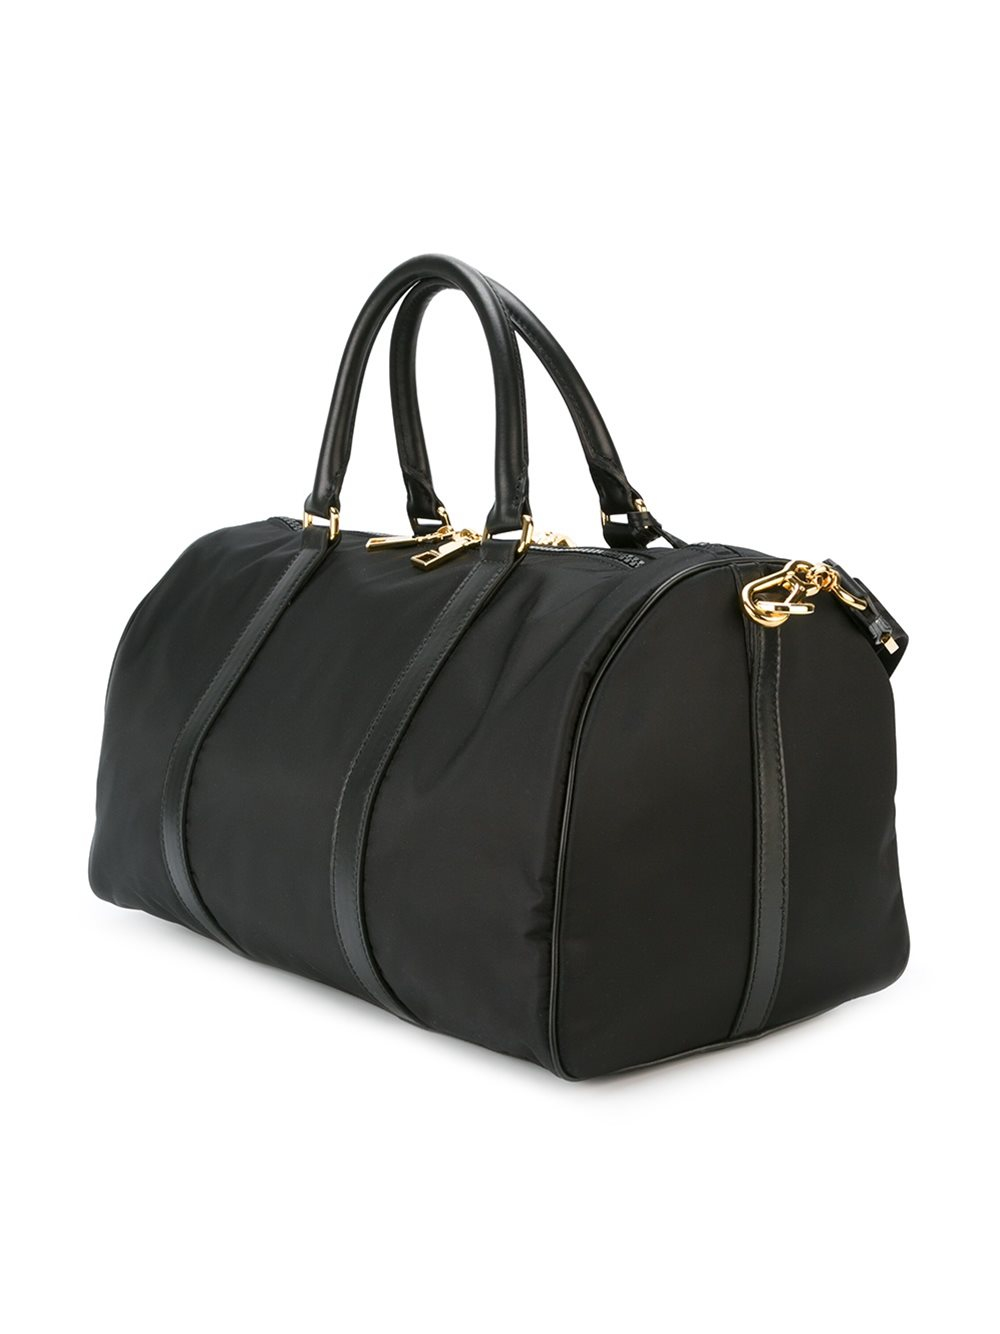 ... info for e795e 2bac1 Lyst - Versace palazzo Medusa Duffle Bag in Black  for Men ... cc7f10d1a3595